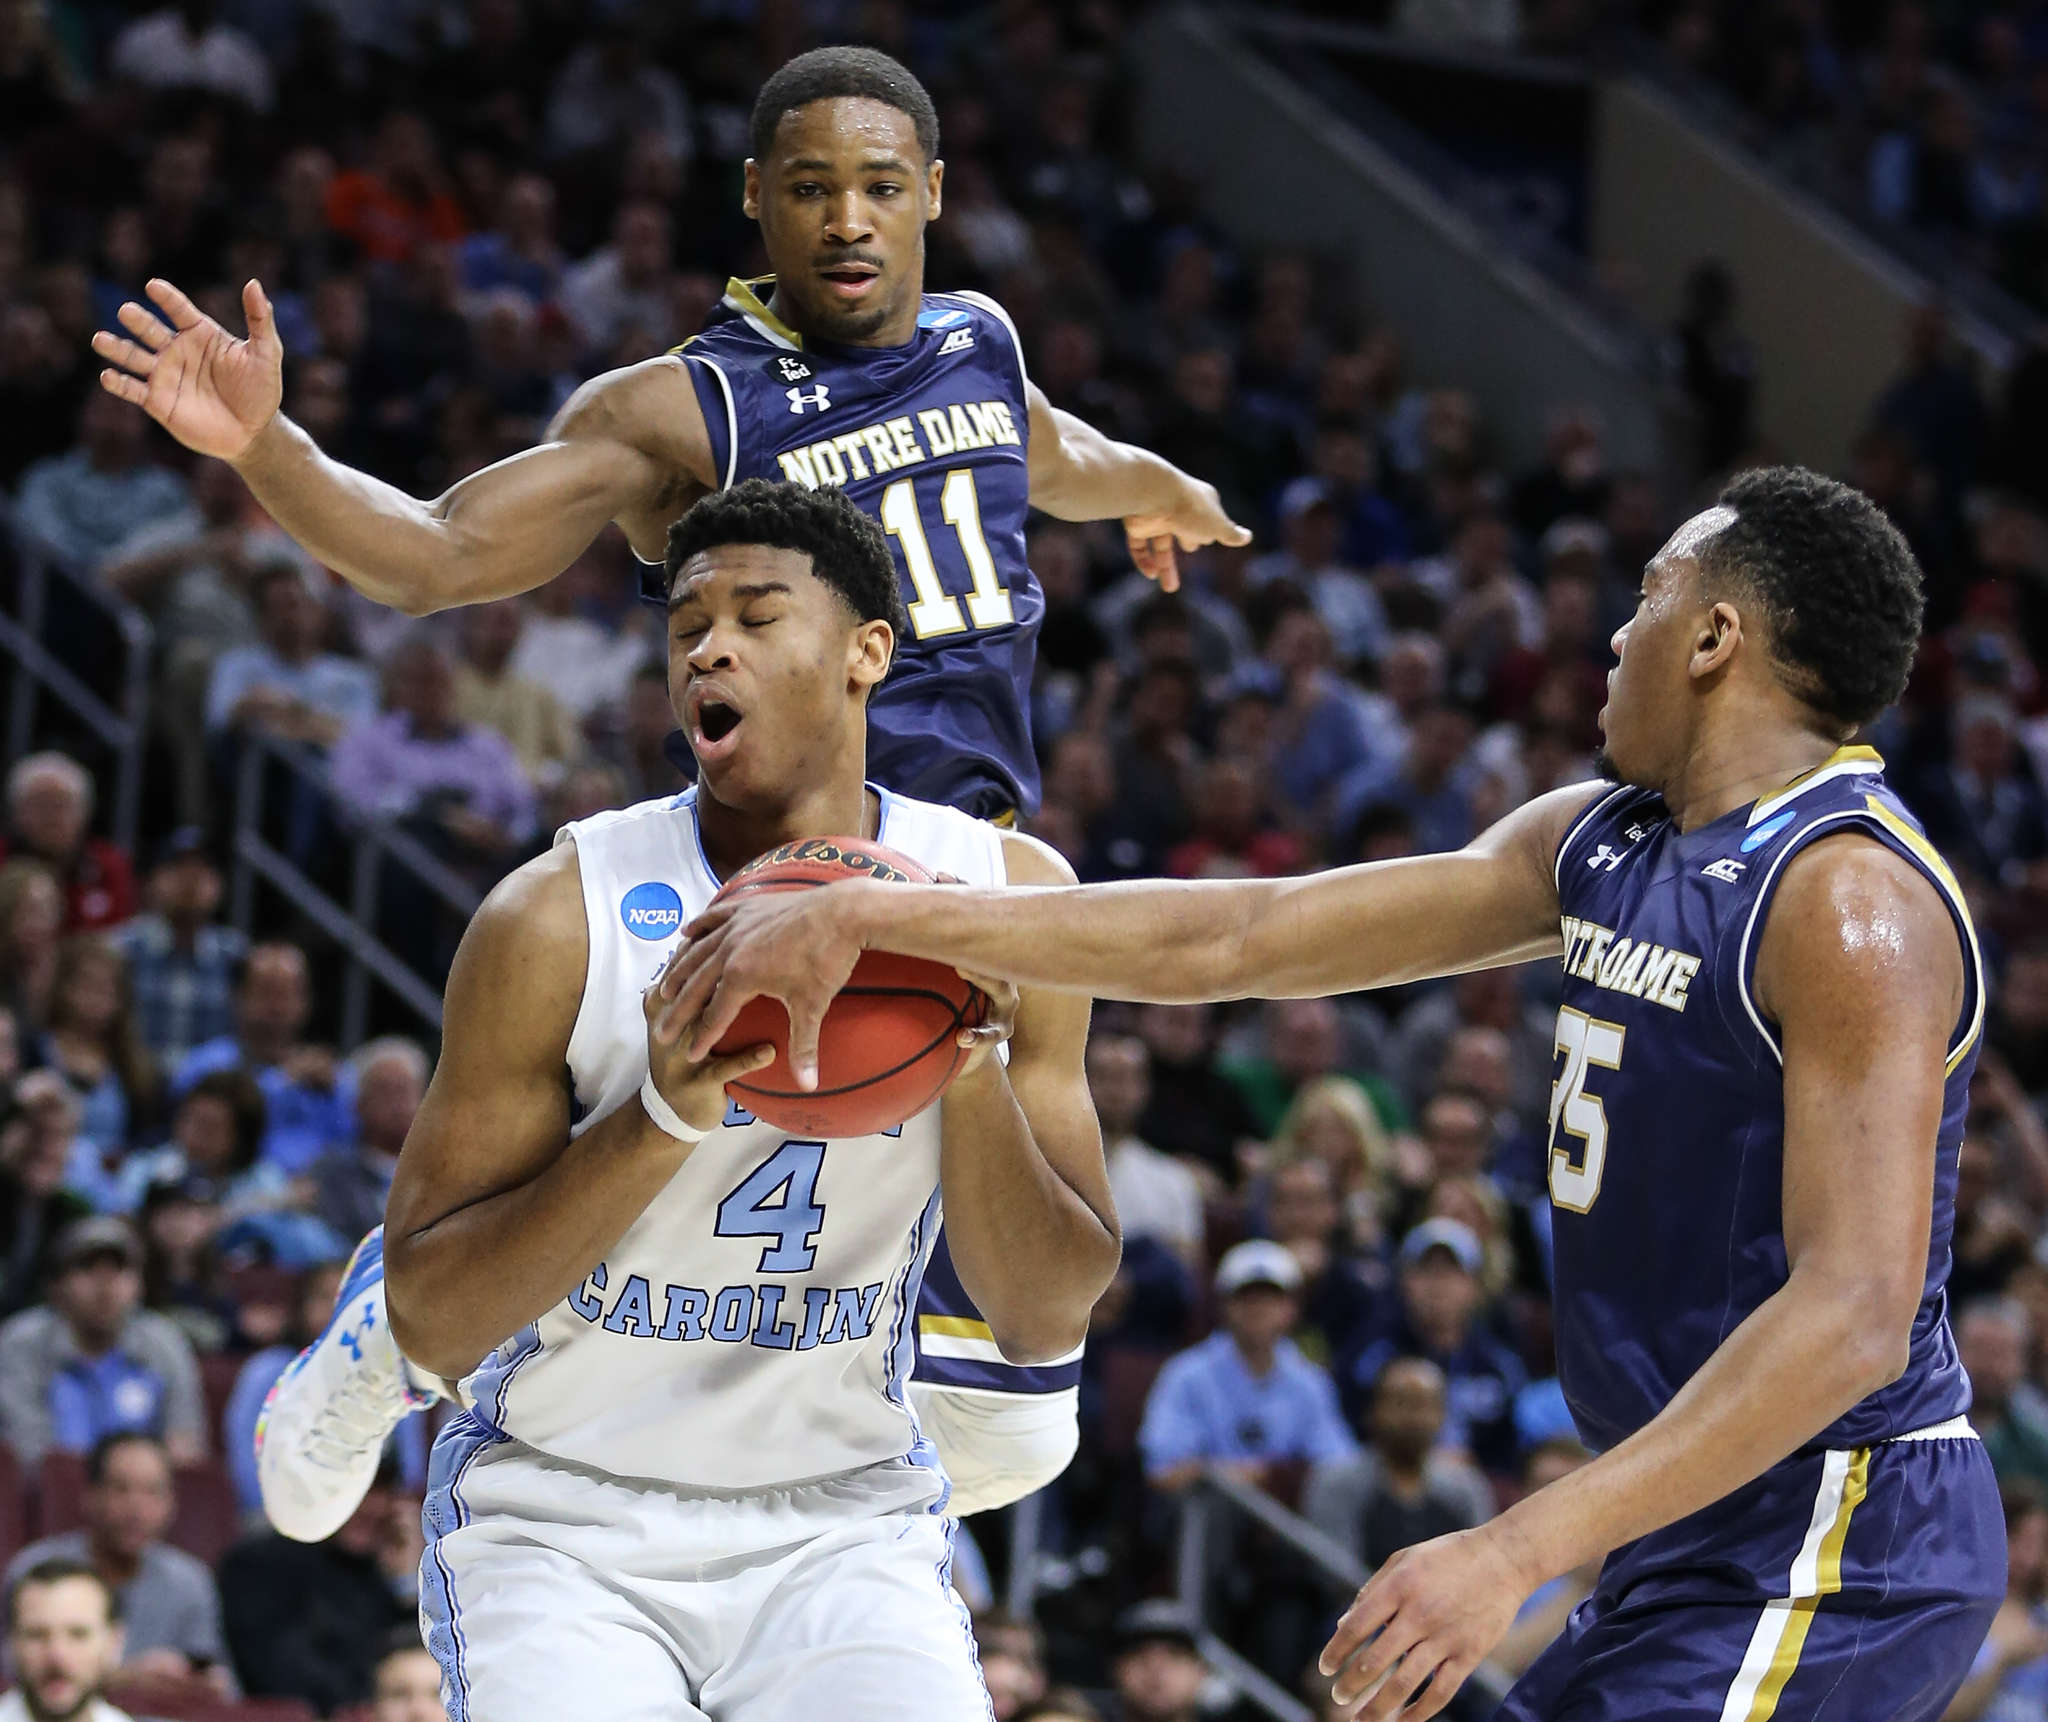 North Carolina´s Isaiah Hicks is fouled by Notre Dame´s Bonzie Colson with Demetrius Jackson behind.